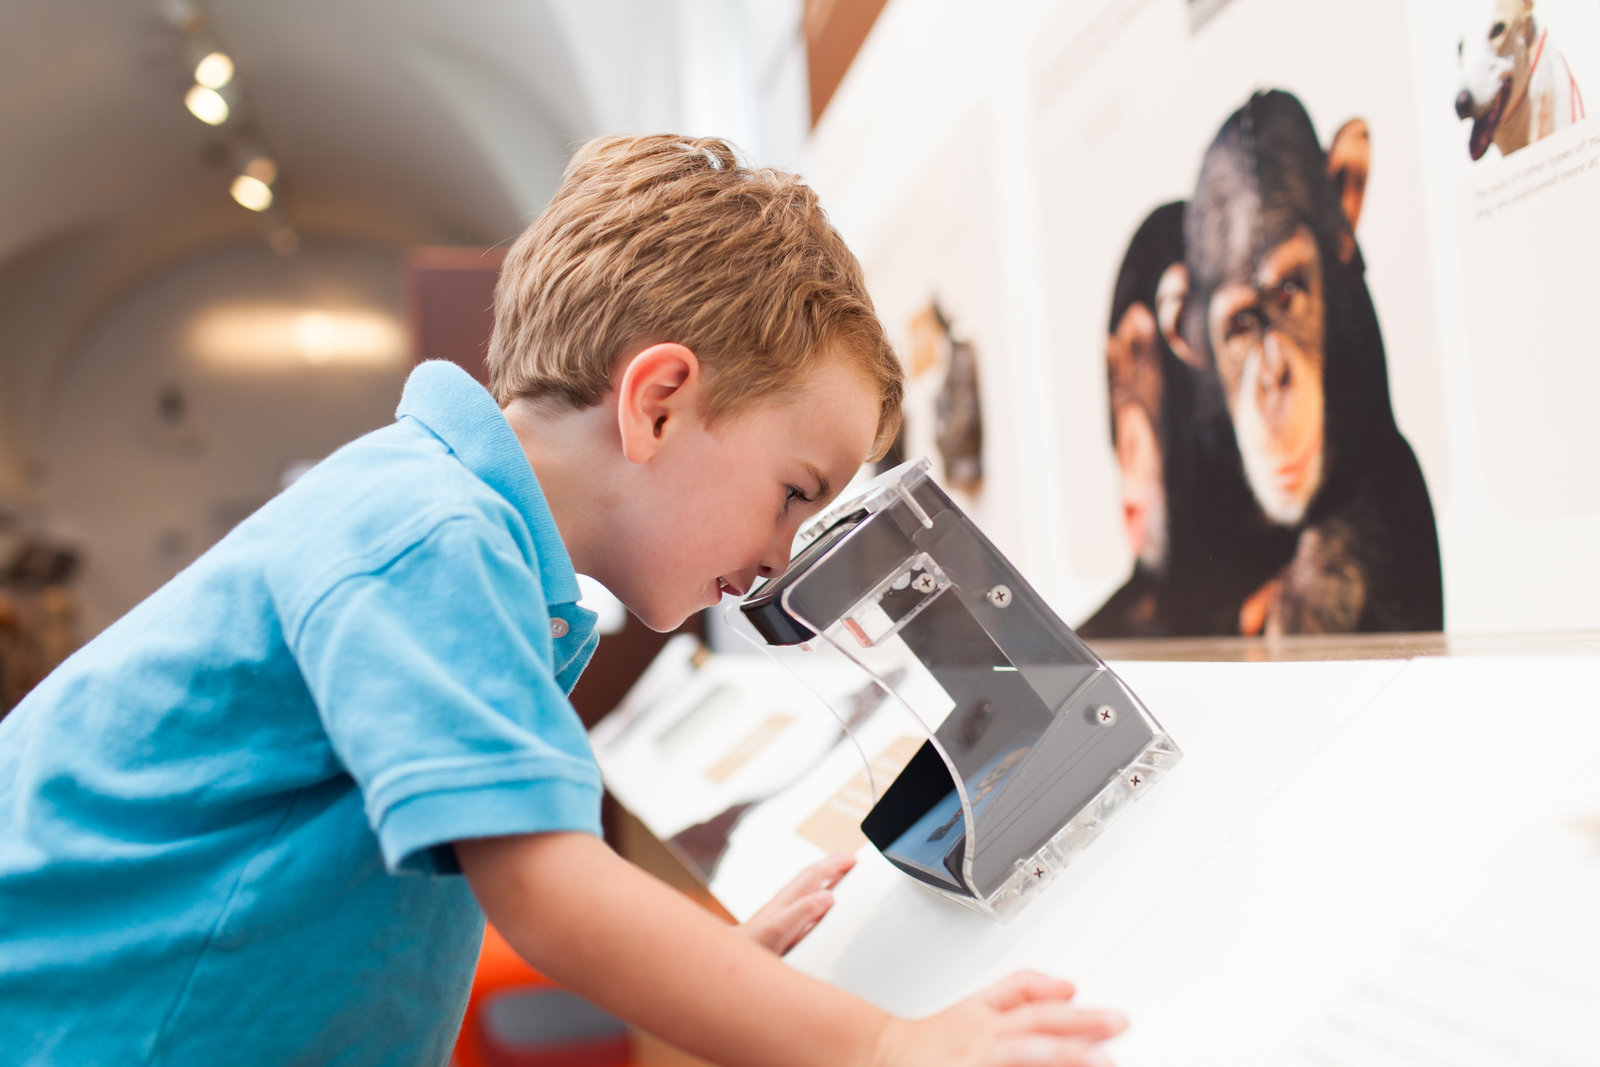 marketing image of a child enjoying the Penn museum in philadelphia